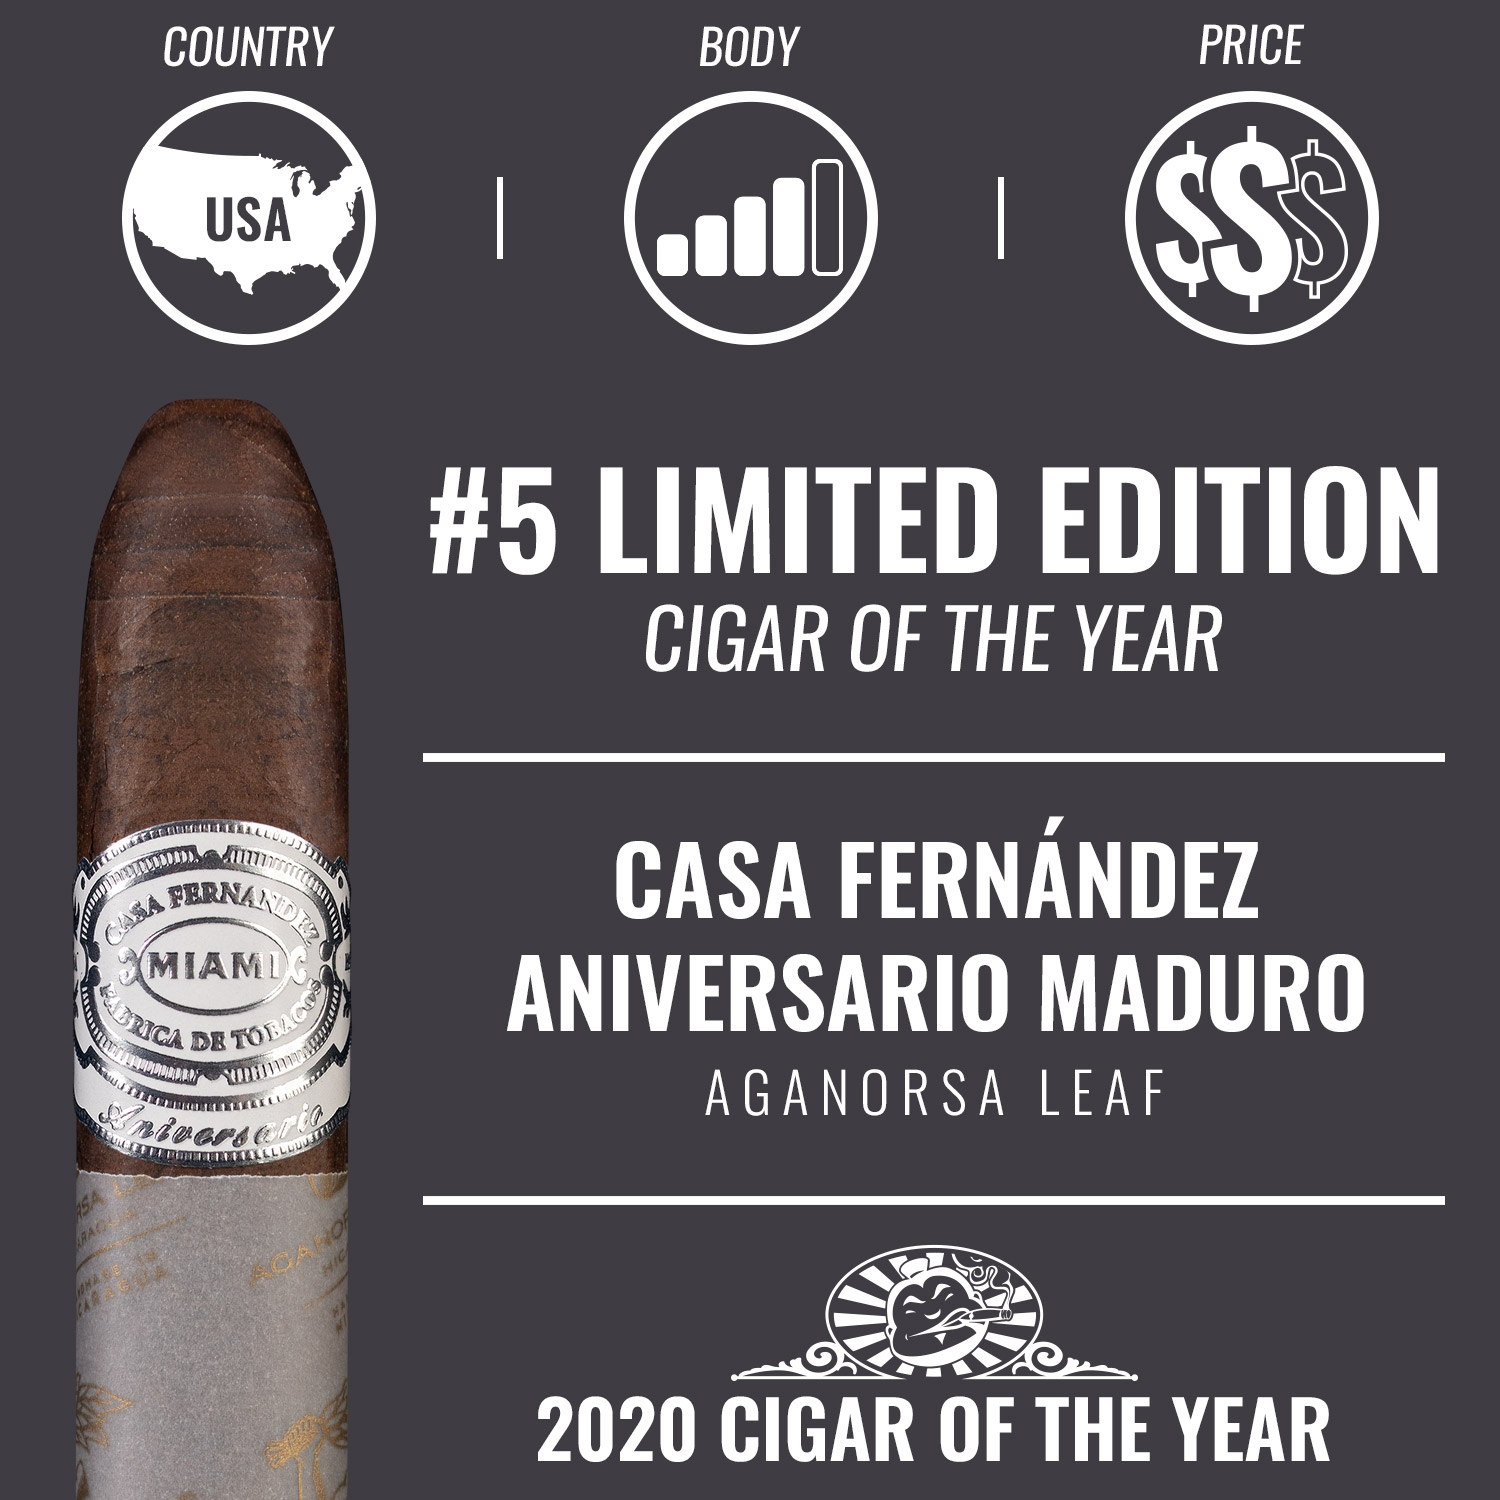 Casa Fernández Aniversario Cuban 109 Maduro No. 5 Limited Edition Cigar of the Year 2020